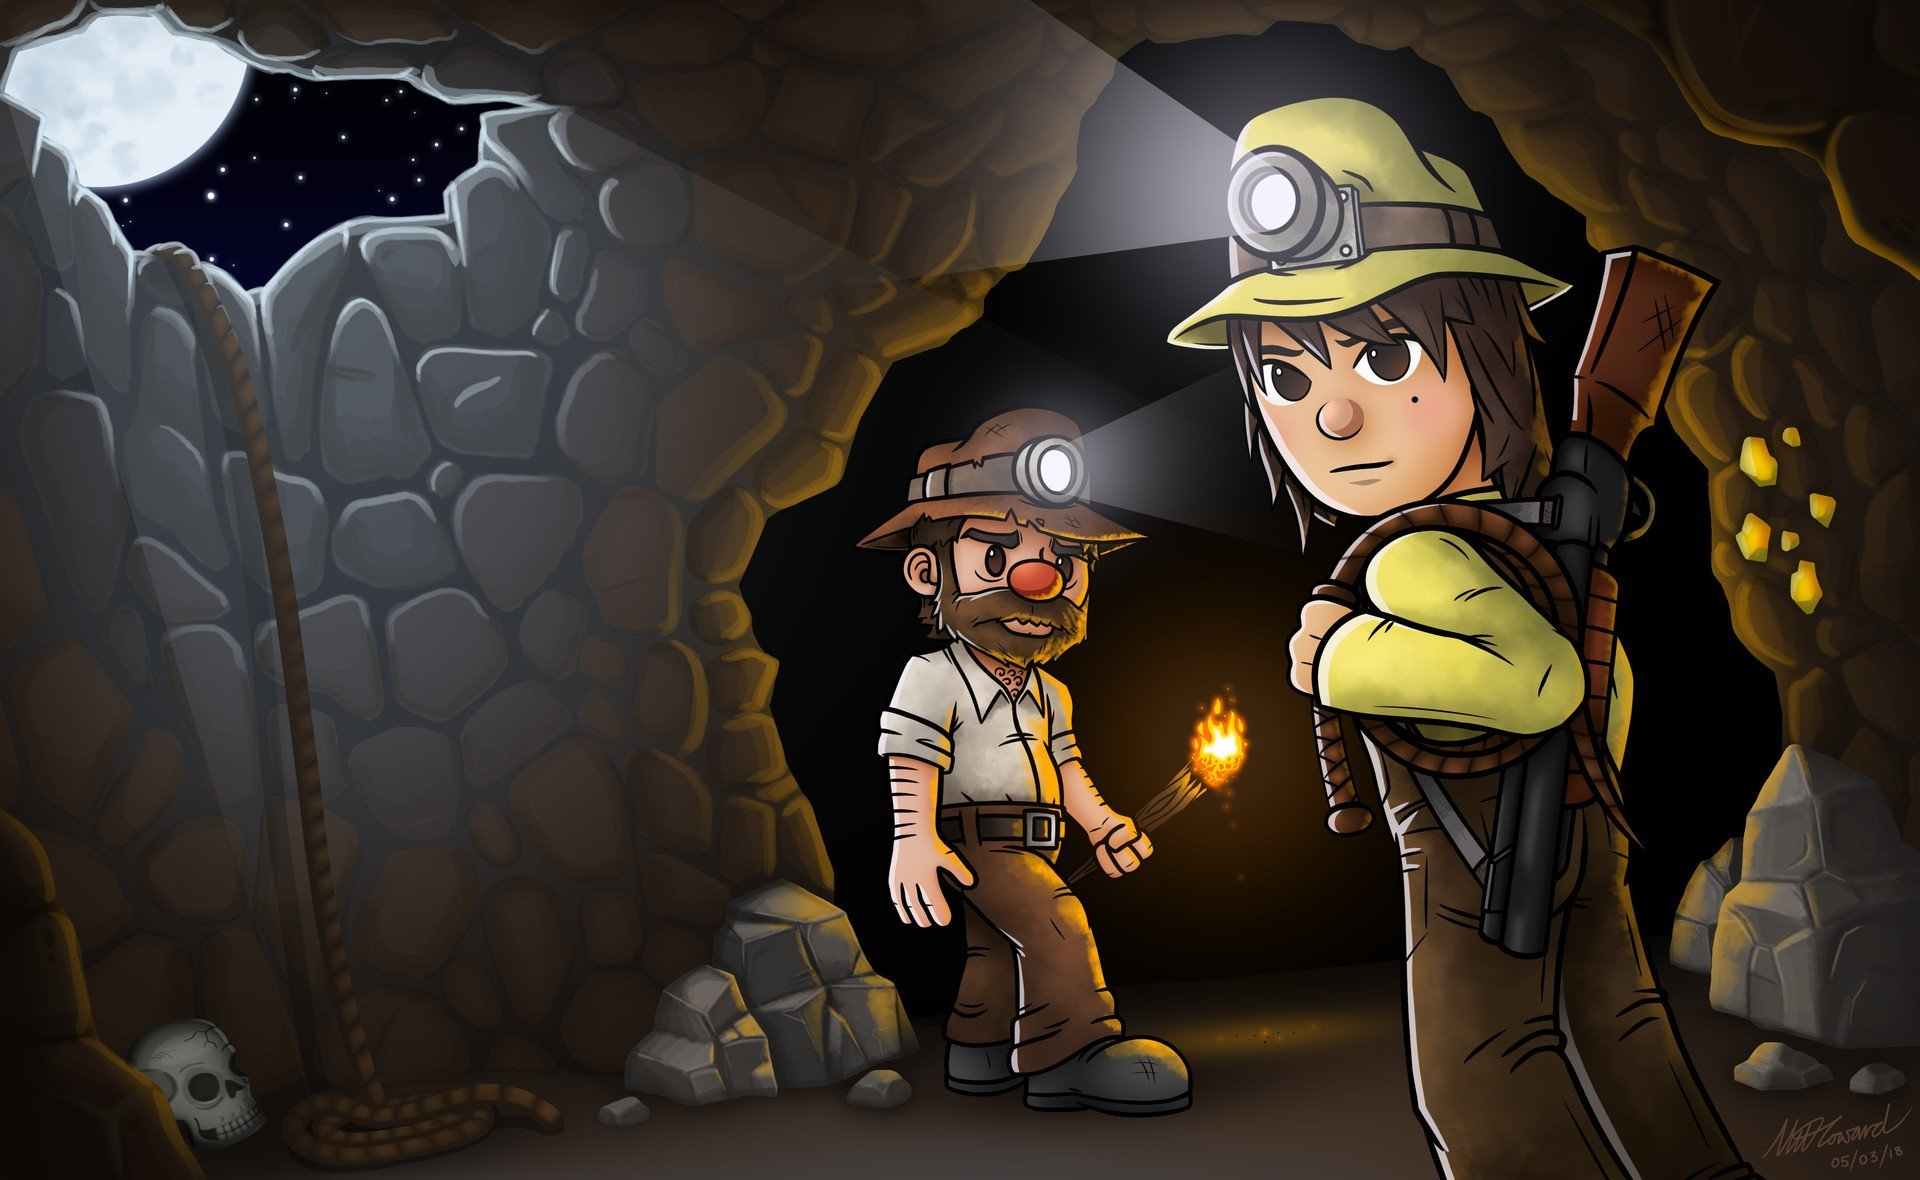 Online multiplayer mode for Spelunky 2 delayed for now